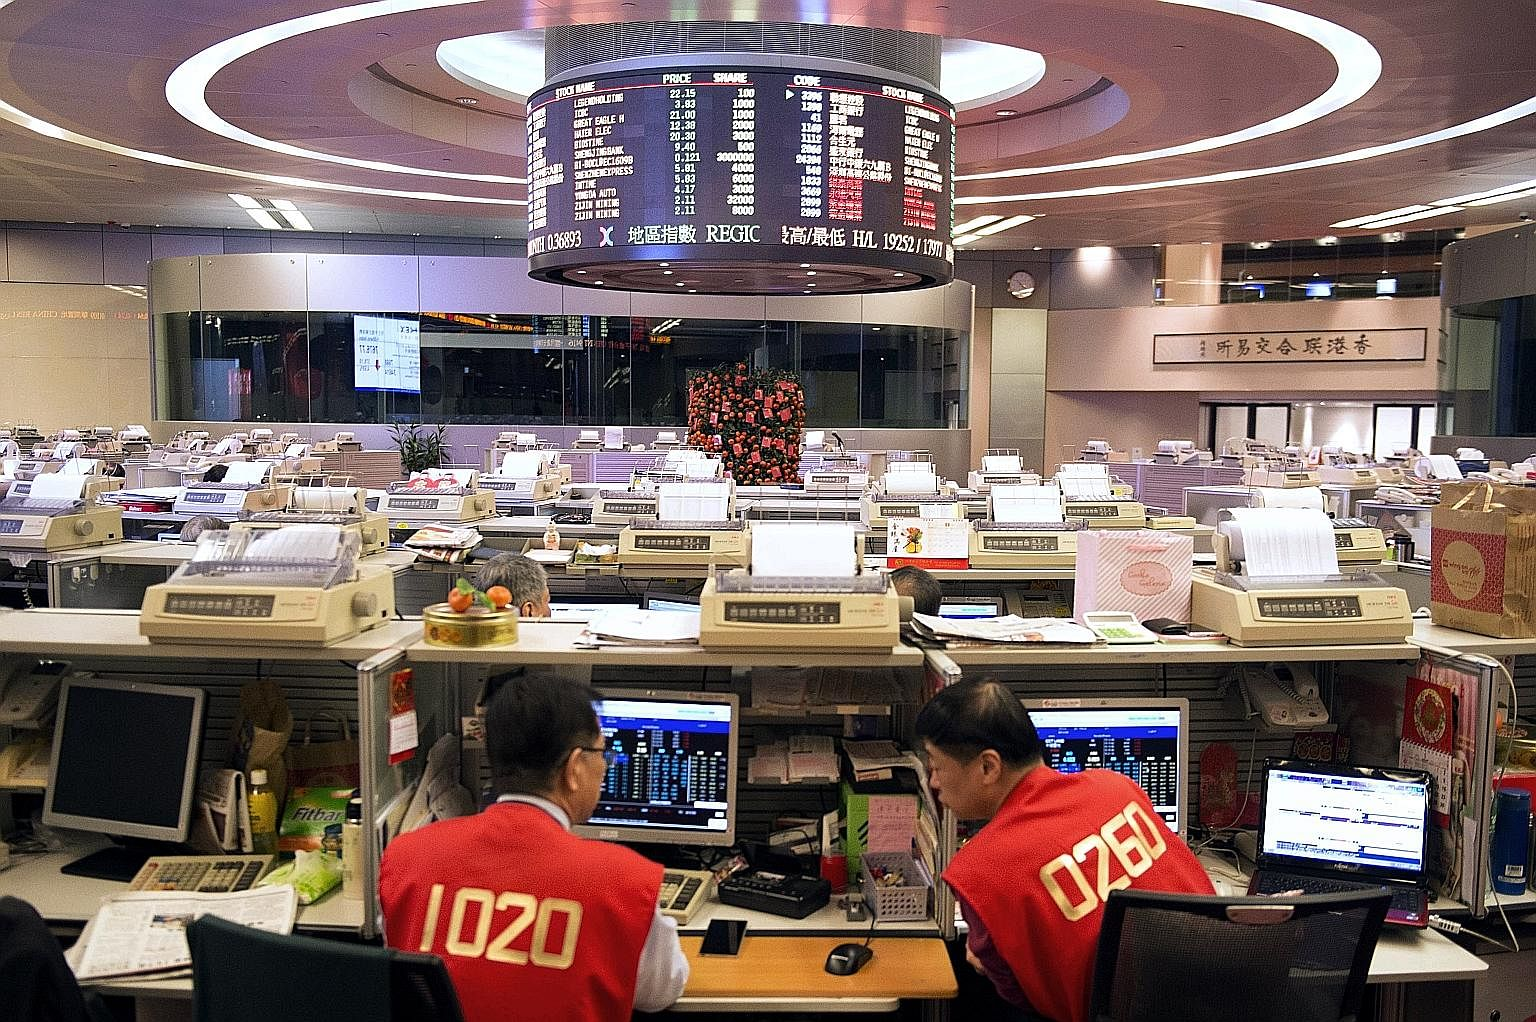 Traders at the Hong Kong stock exchange. Too many mainland companies listing in Hong Kong are going public before corporate governance practices are up to speed, the writer says. Traders say last week's mysterious US$3 billion rout in small-cap Hong